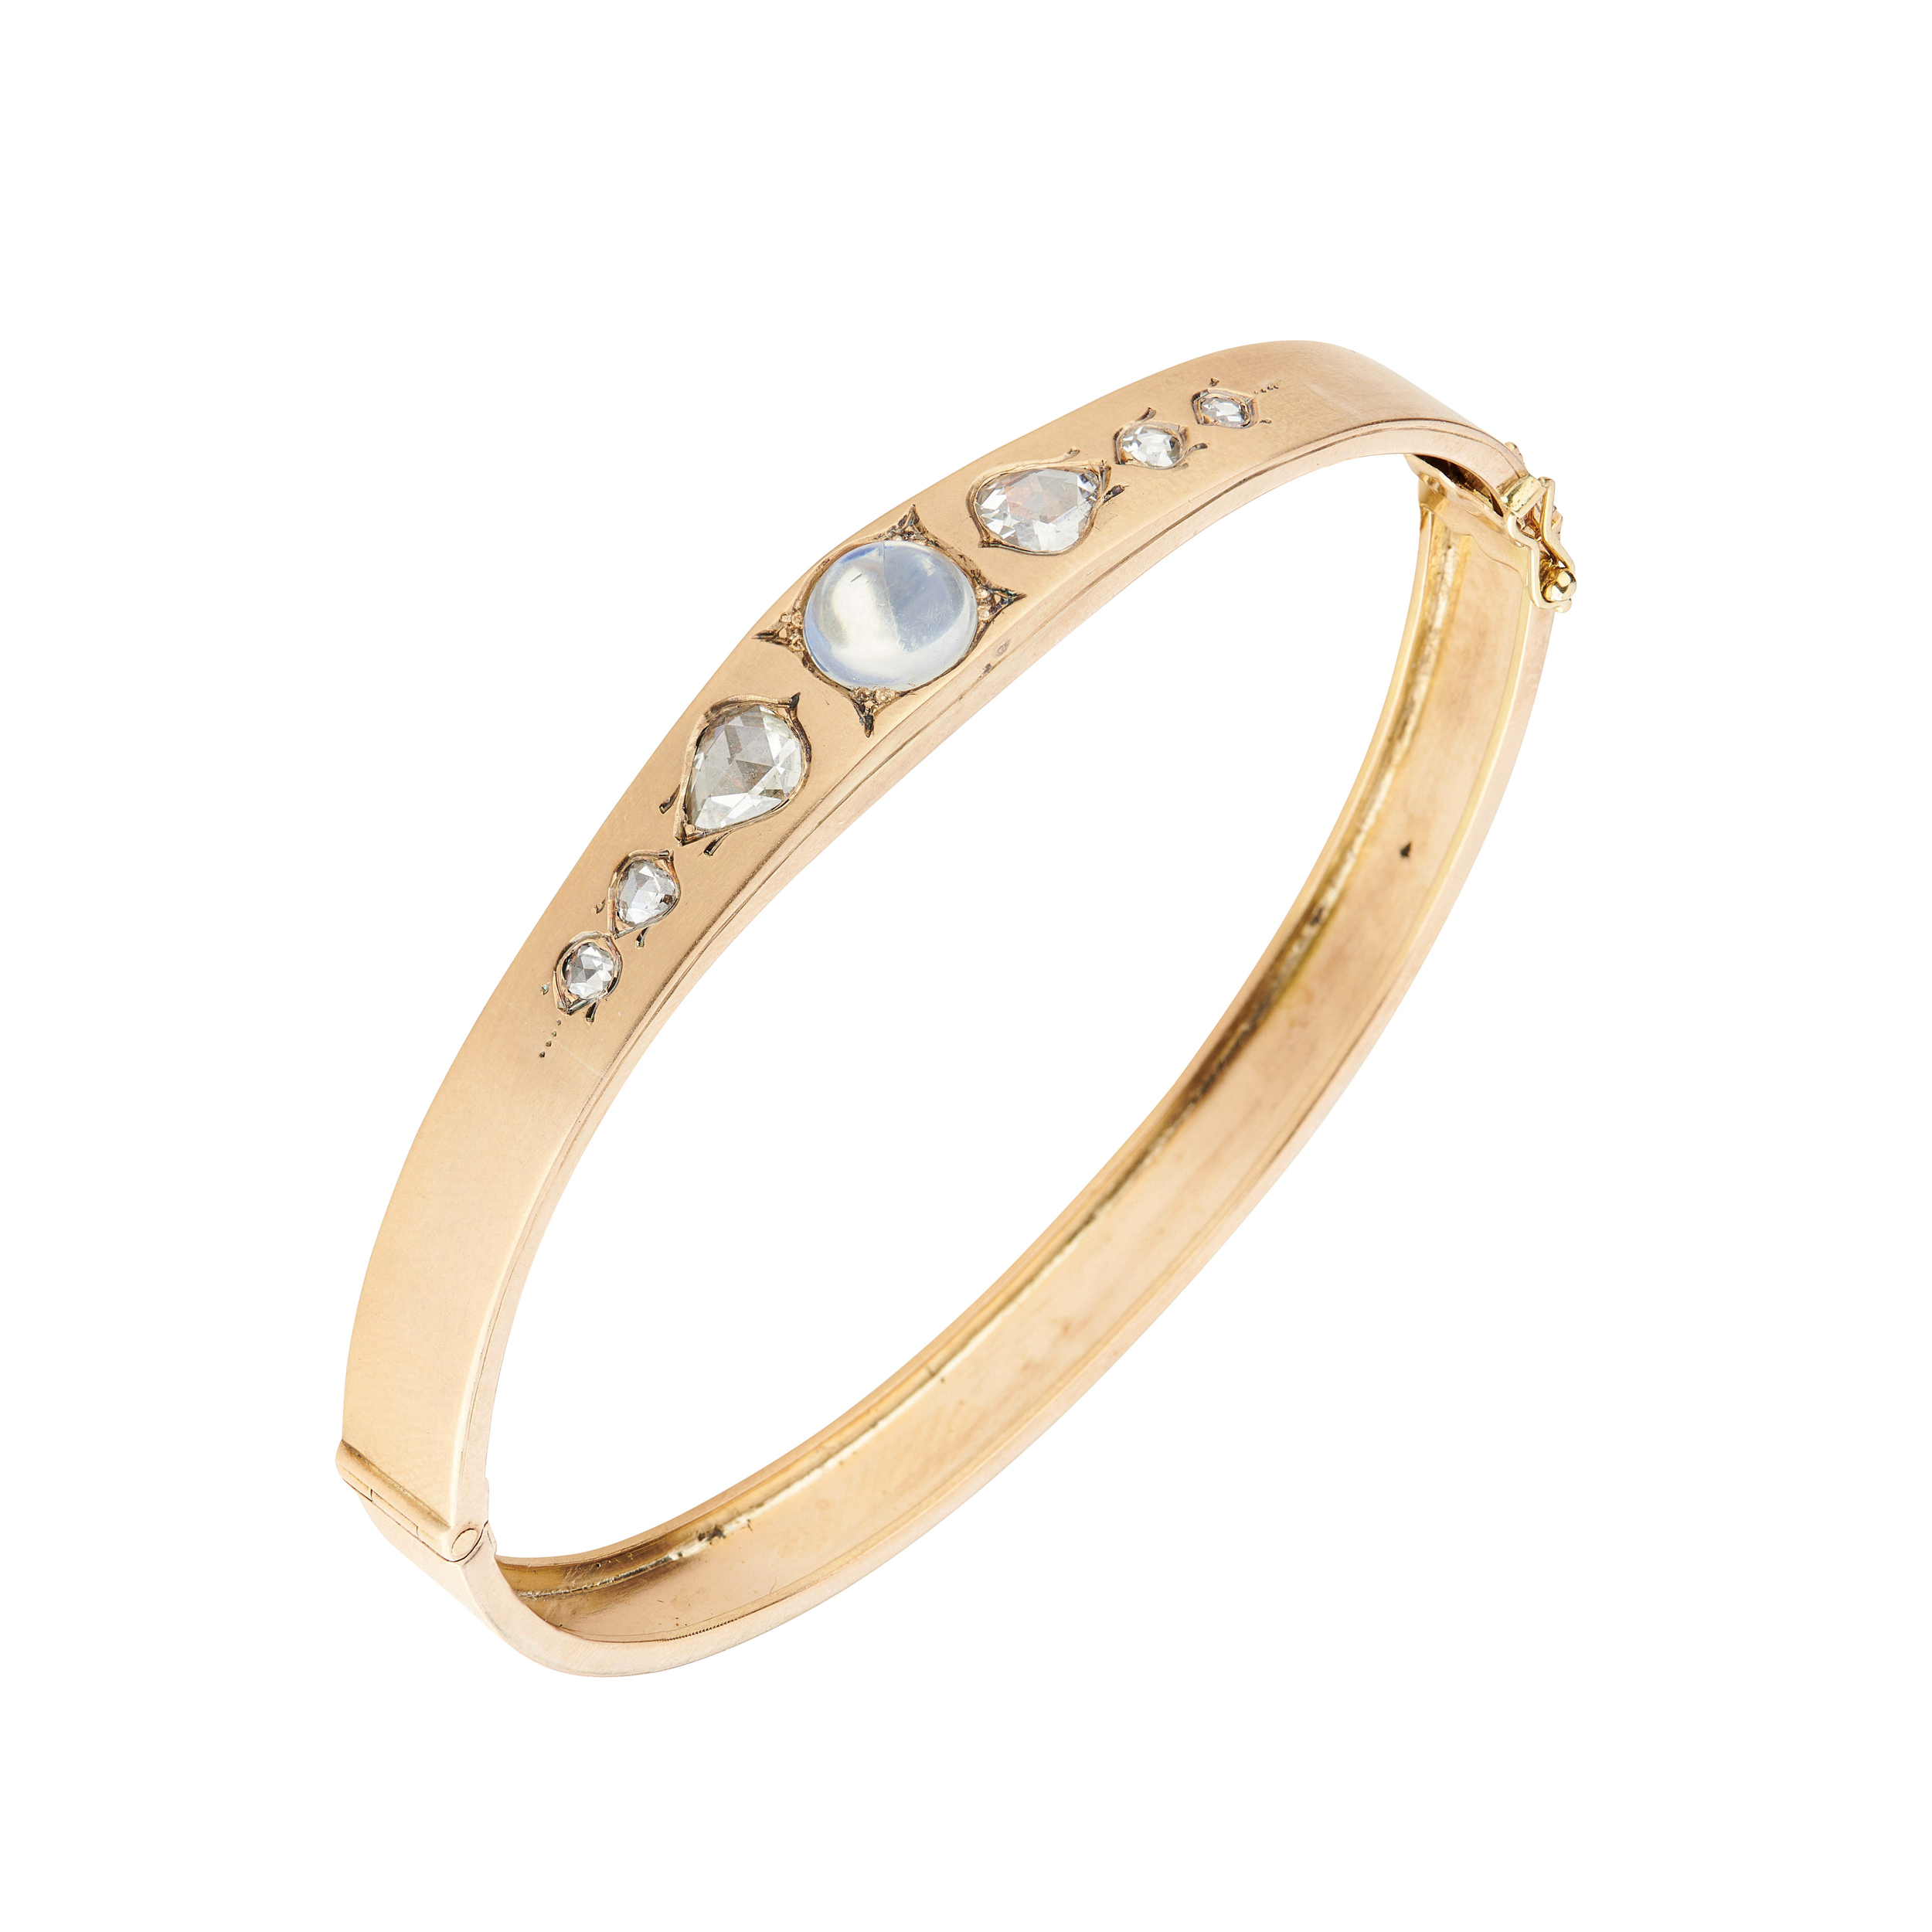 A late 19th century 14ct gold moonstone and diamond hinged bangle